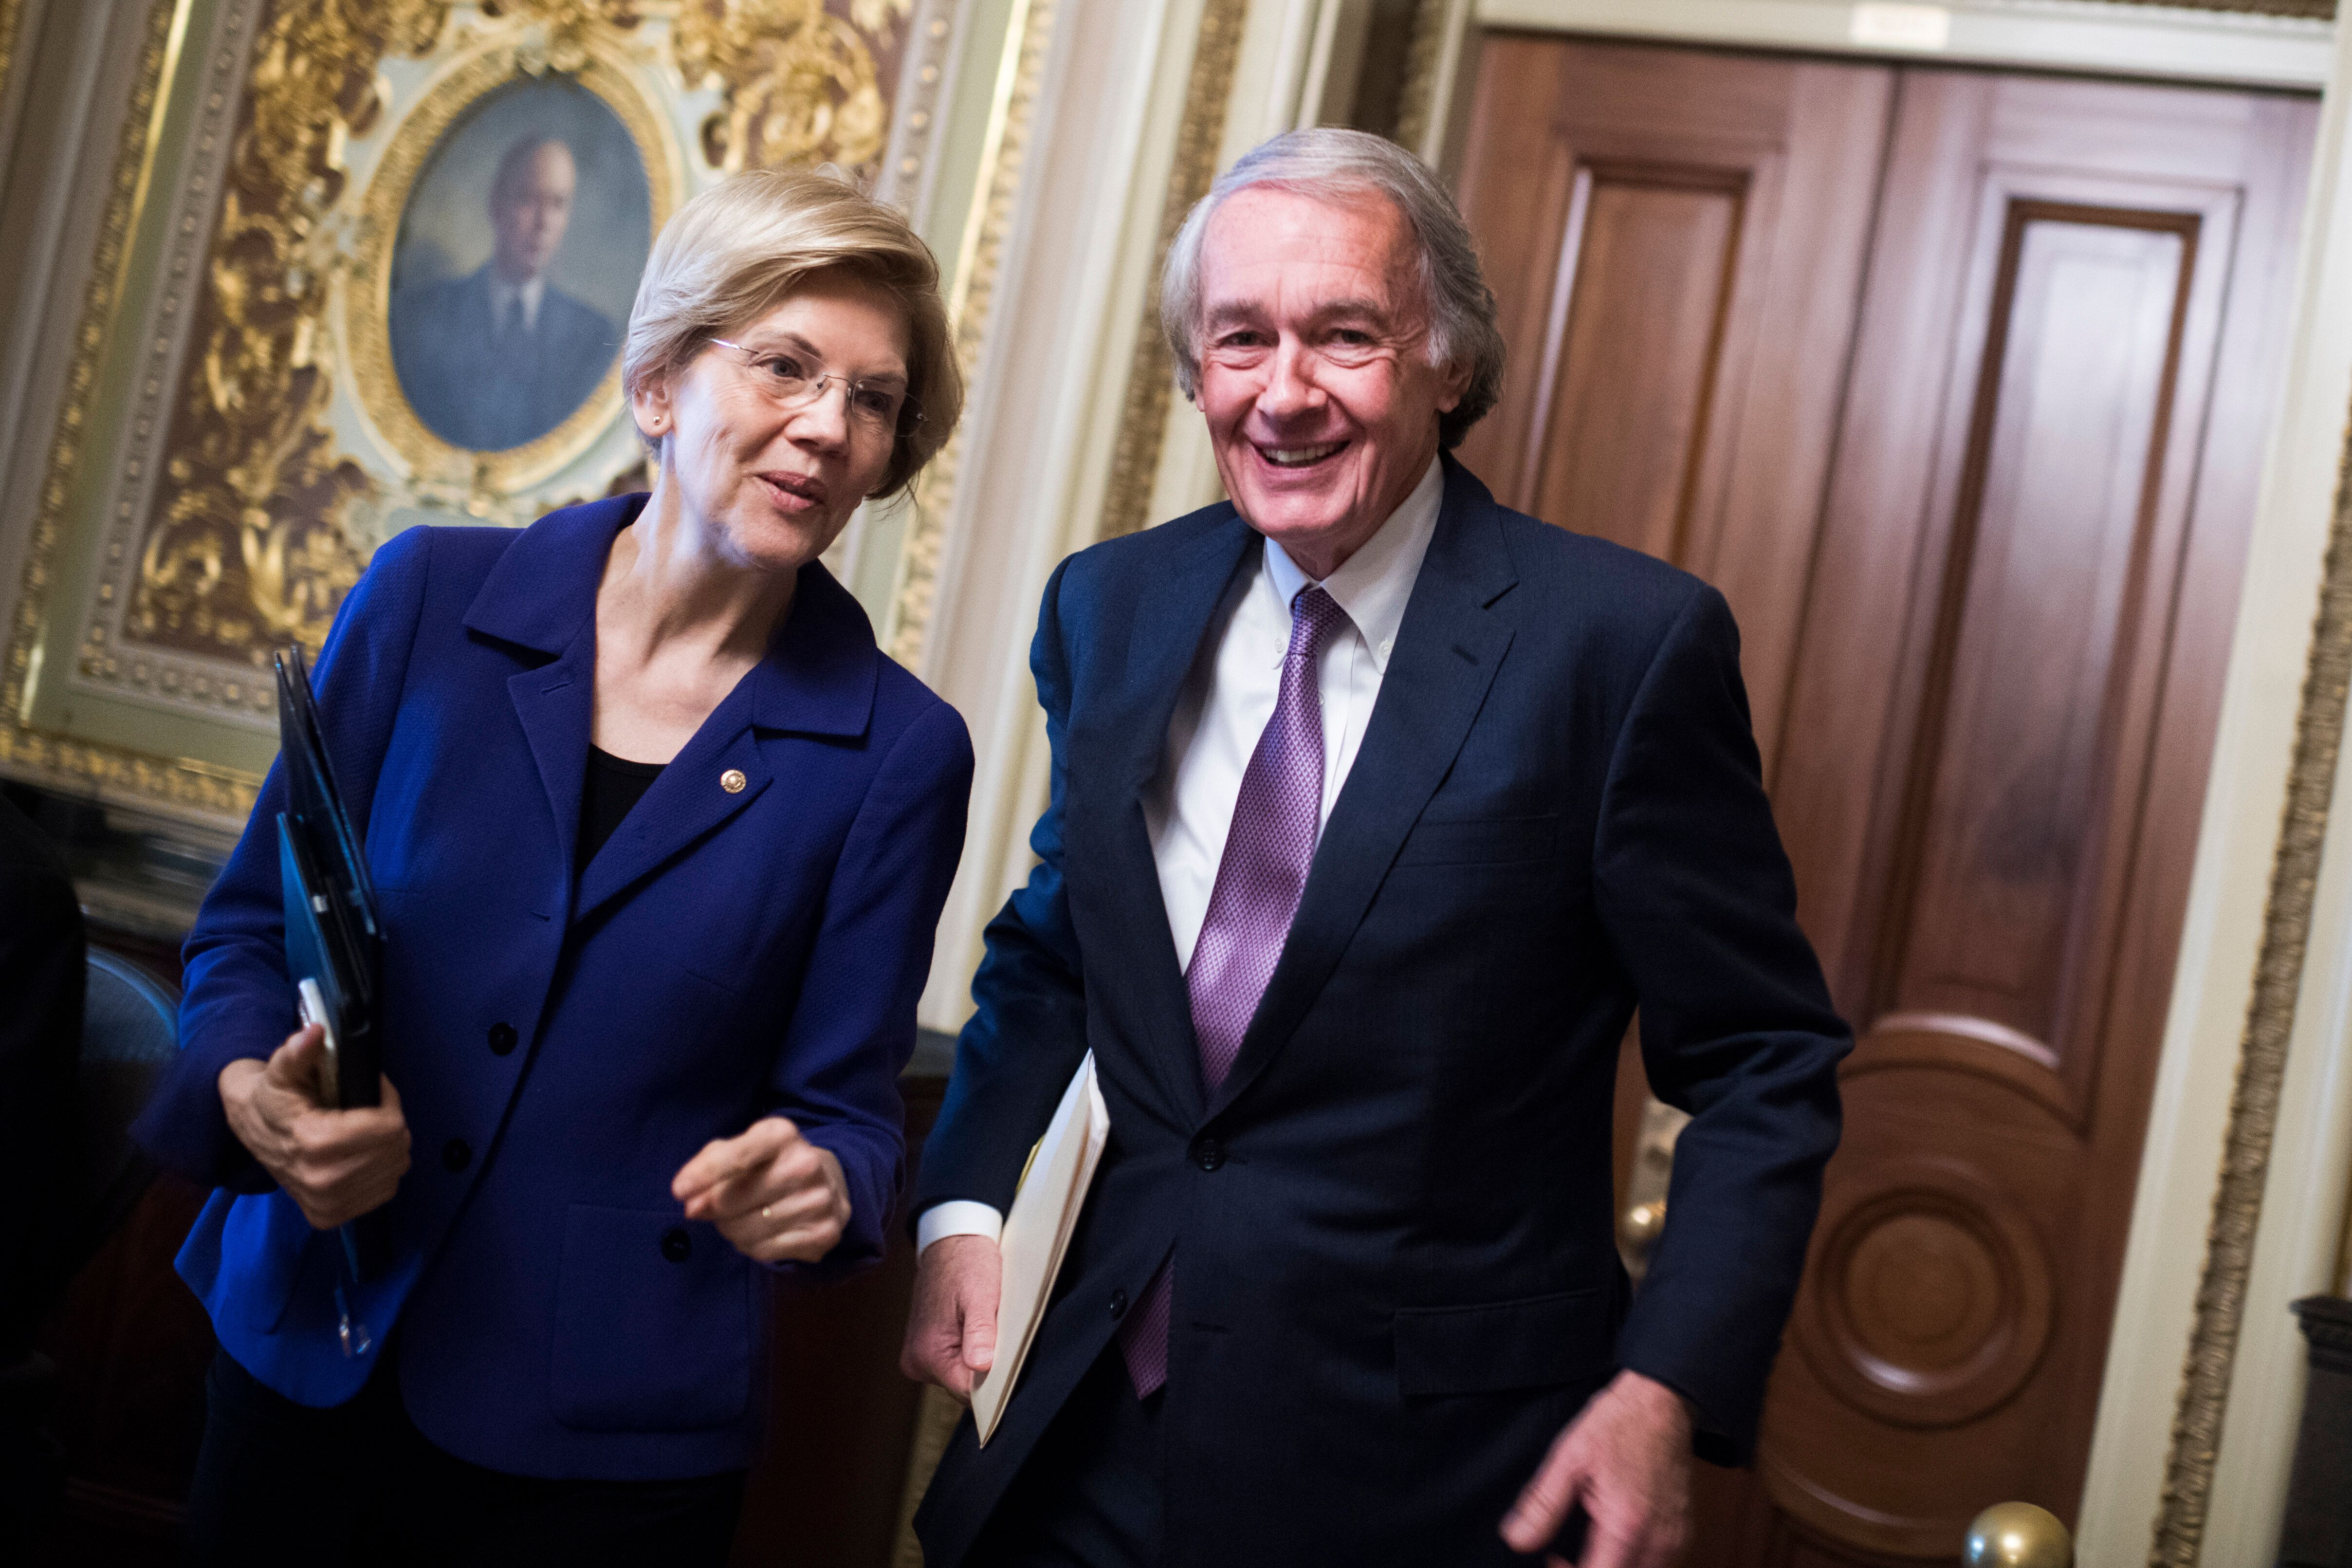 Massachusetts Sens. Ed Markey and Elizabeth Warren, both Democrats, have been pressing the EPA on its order to suspend enforc